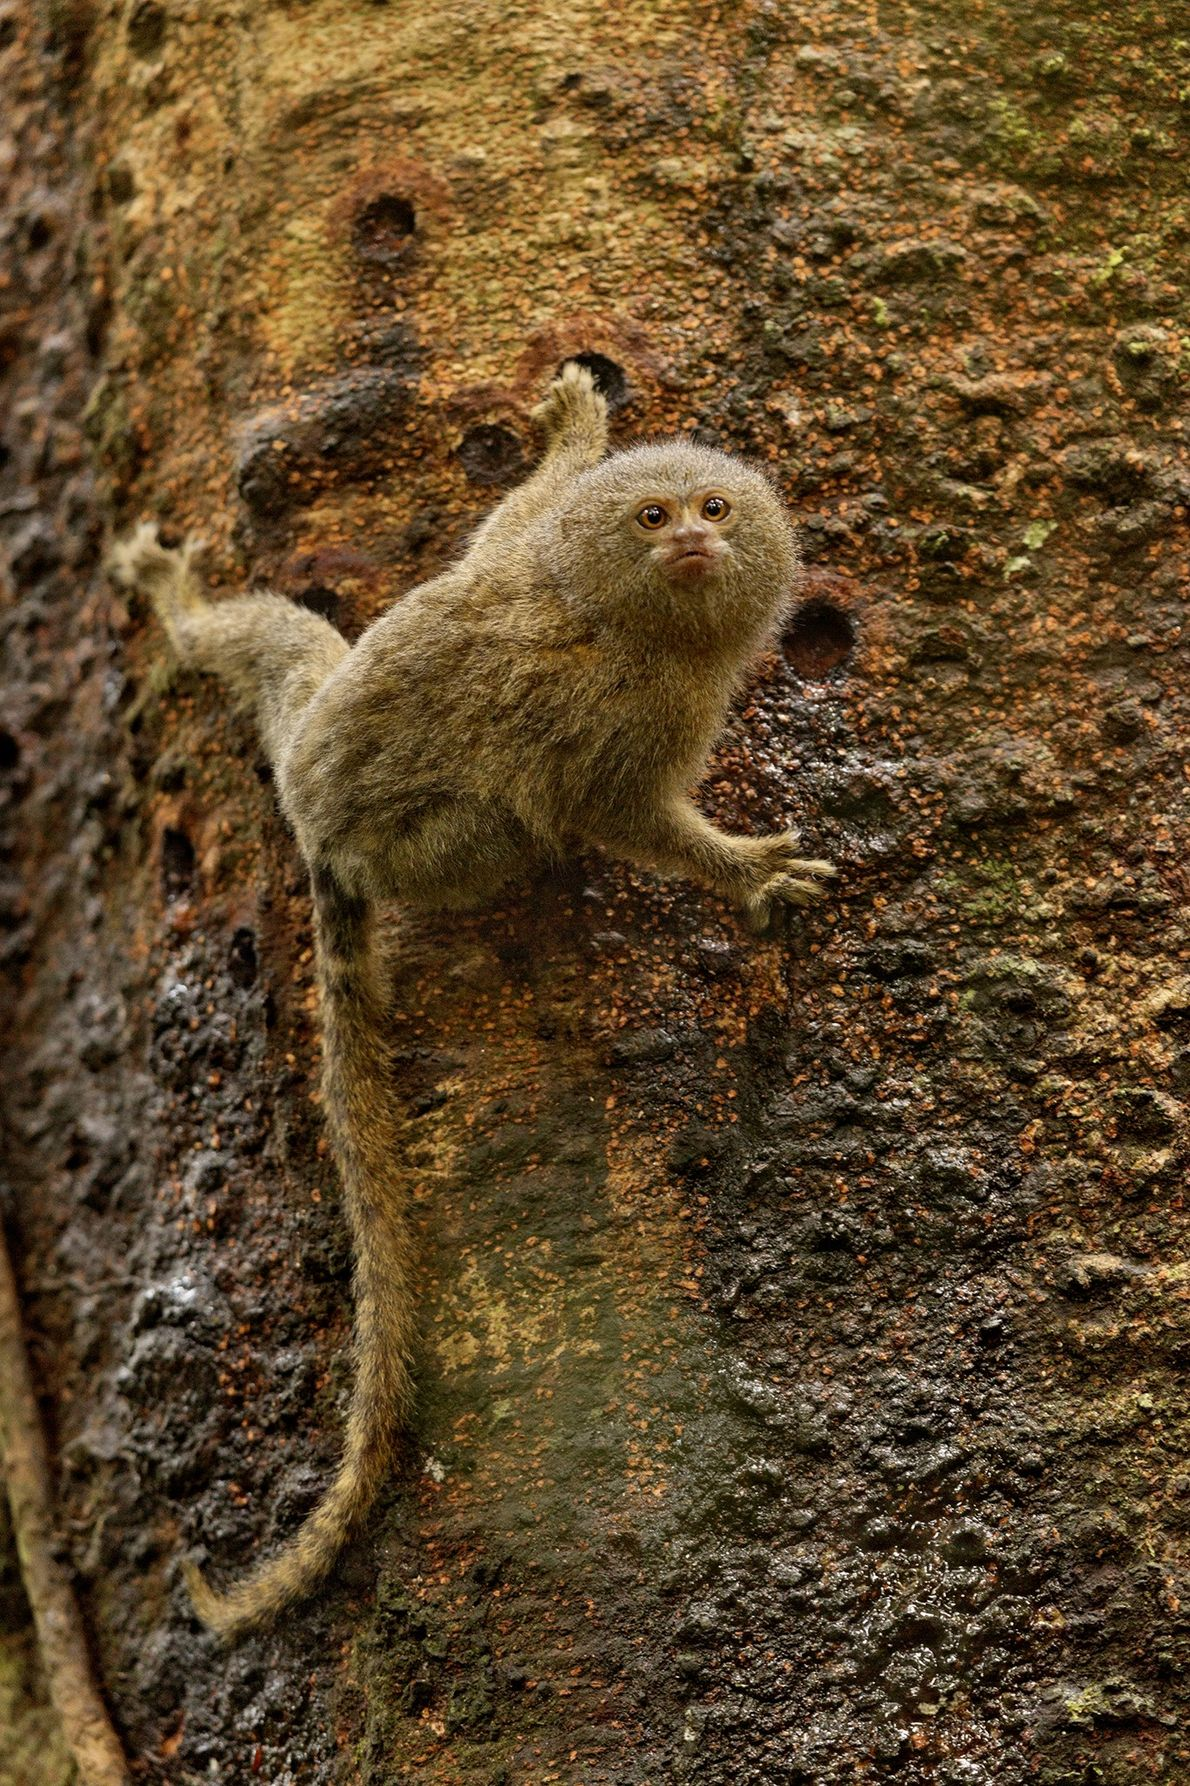 A pygmy marmoset weighs just over a hundred grams (3.5 ounces). This monkey is feeding on ...